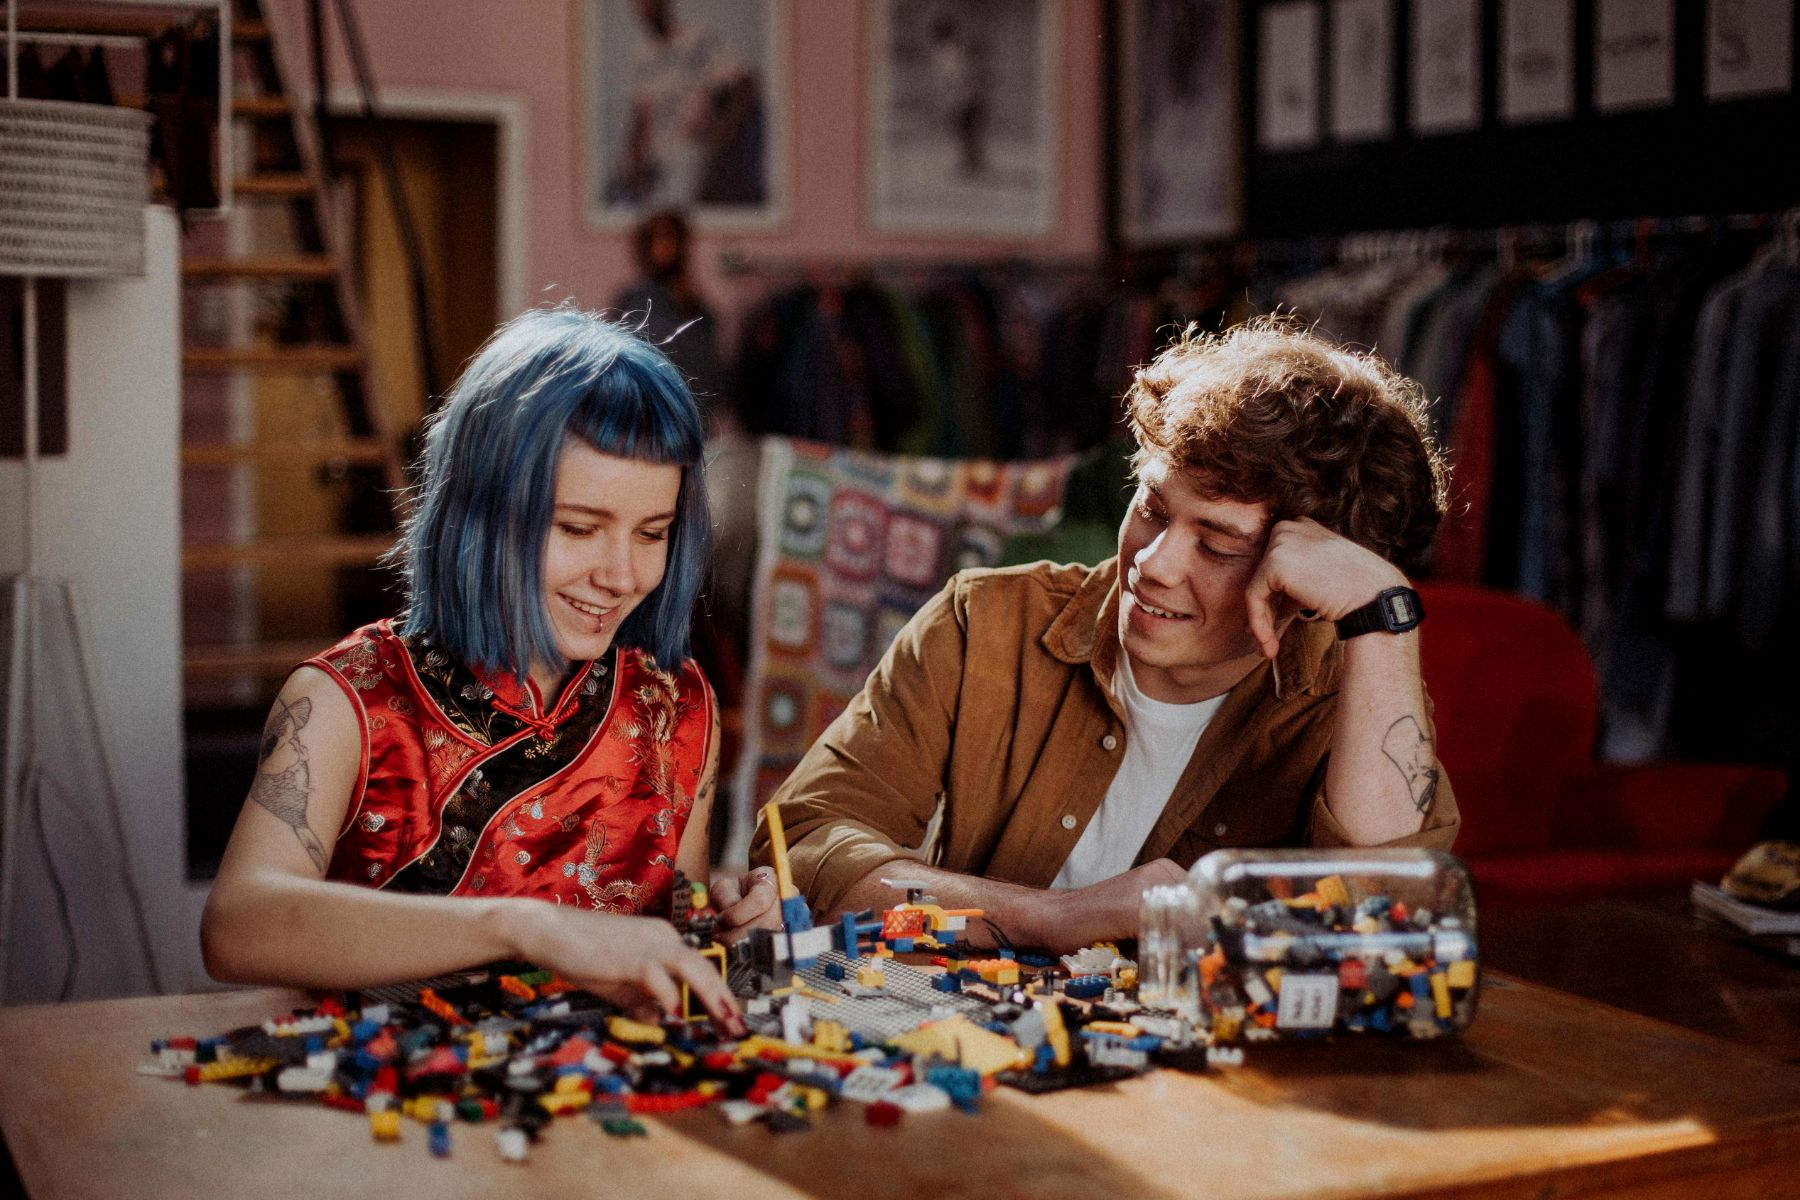 Couples portfolio image of artistic couple smiling and building lego together under beautiful natural light